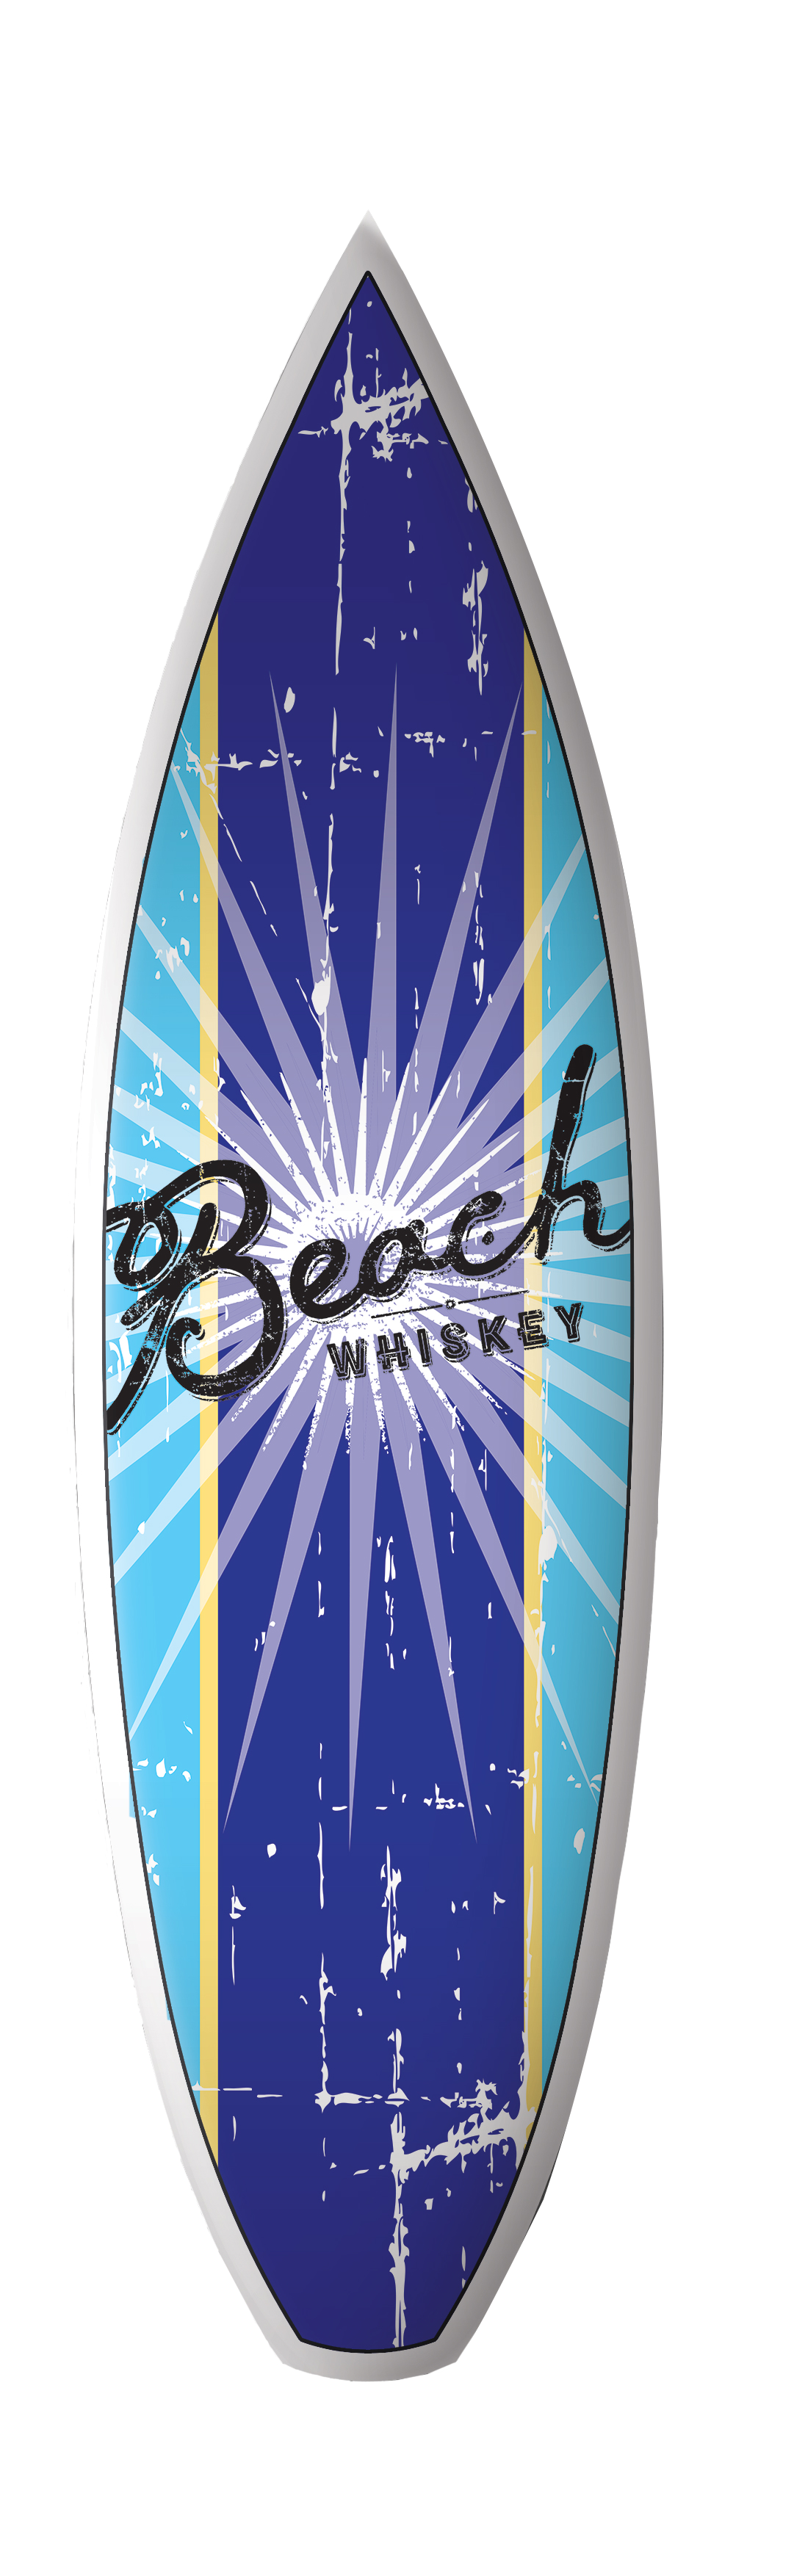 Beach-Whiskey--Surf.png